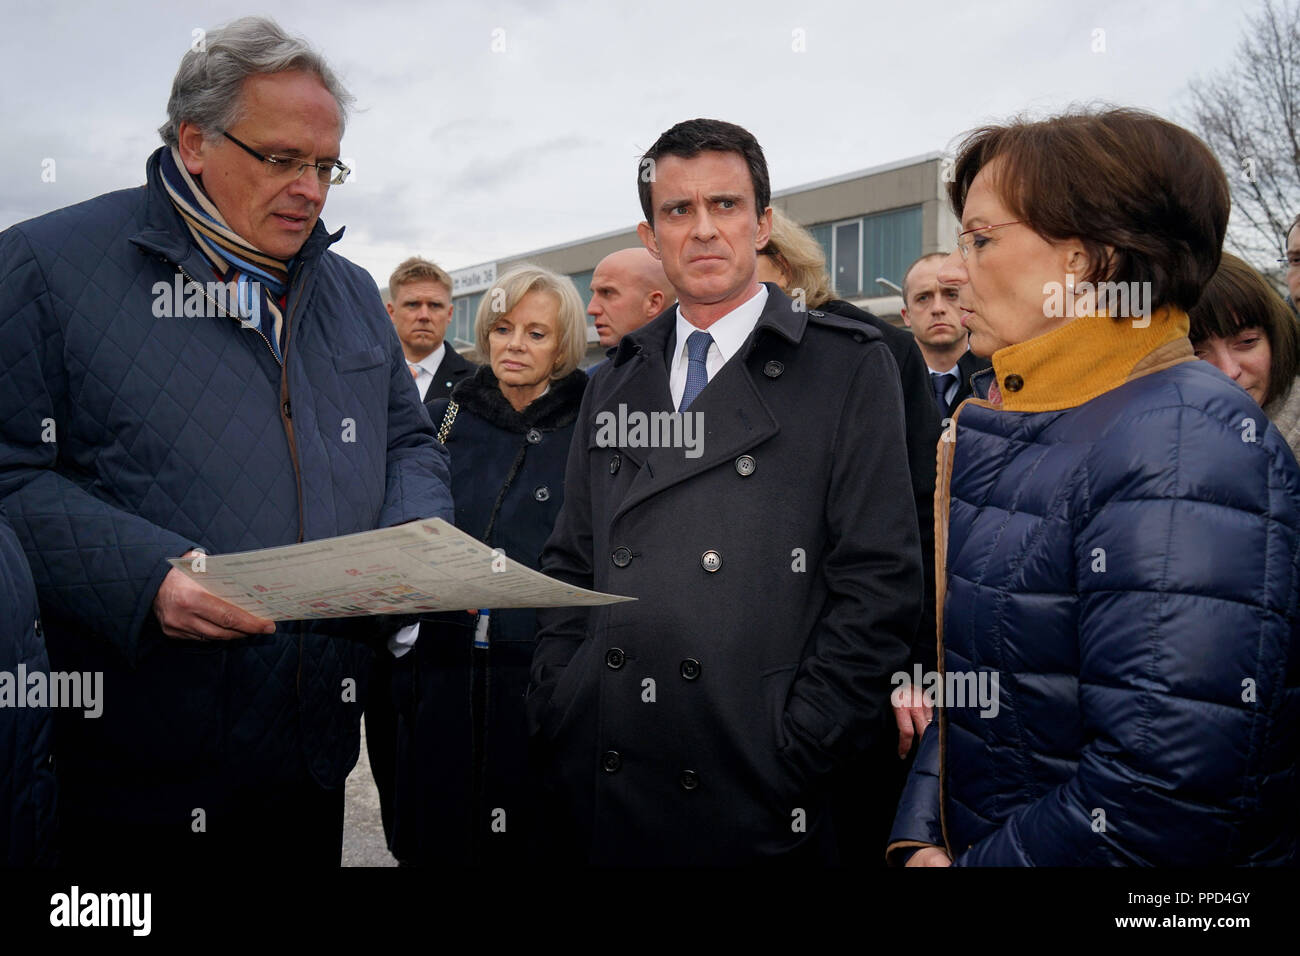 Manuel Valls (m.), Prime Minister of the French Republic, accompanied by the Bavarian Social Minister Emilia Mueller (r.) and the President of the Government of Upper Bavaria, Christoph Hillenbrand (l.), the initial reception center for refugees in the Bayernkaserne. - Stock Image